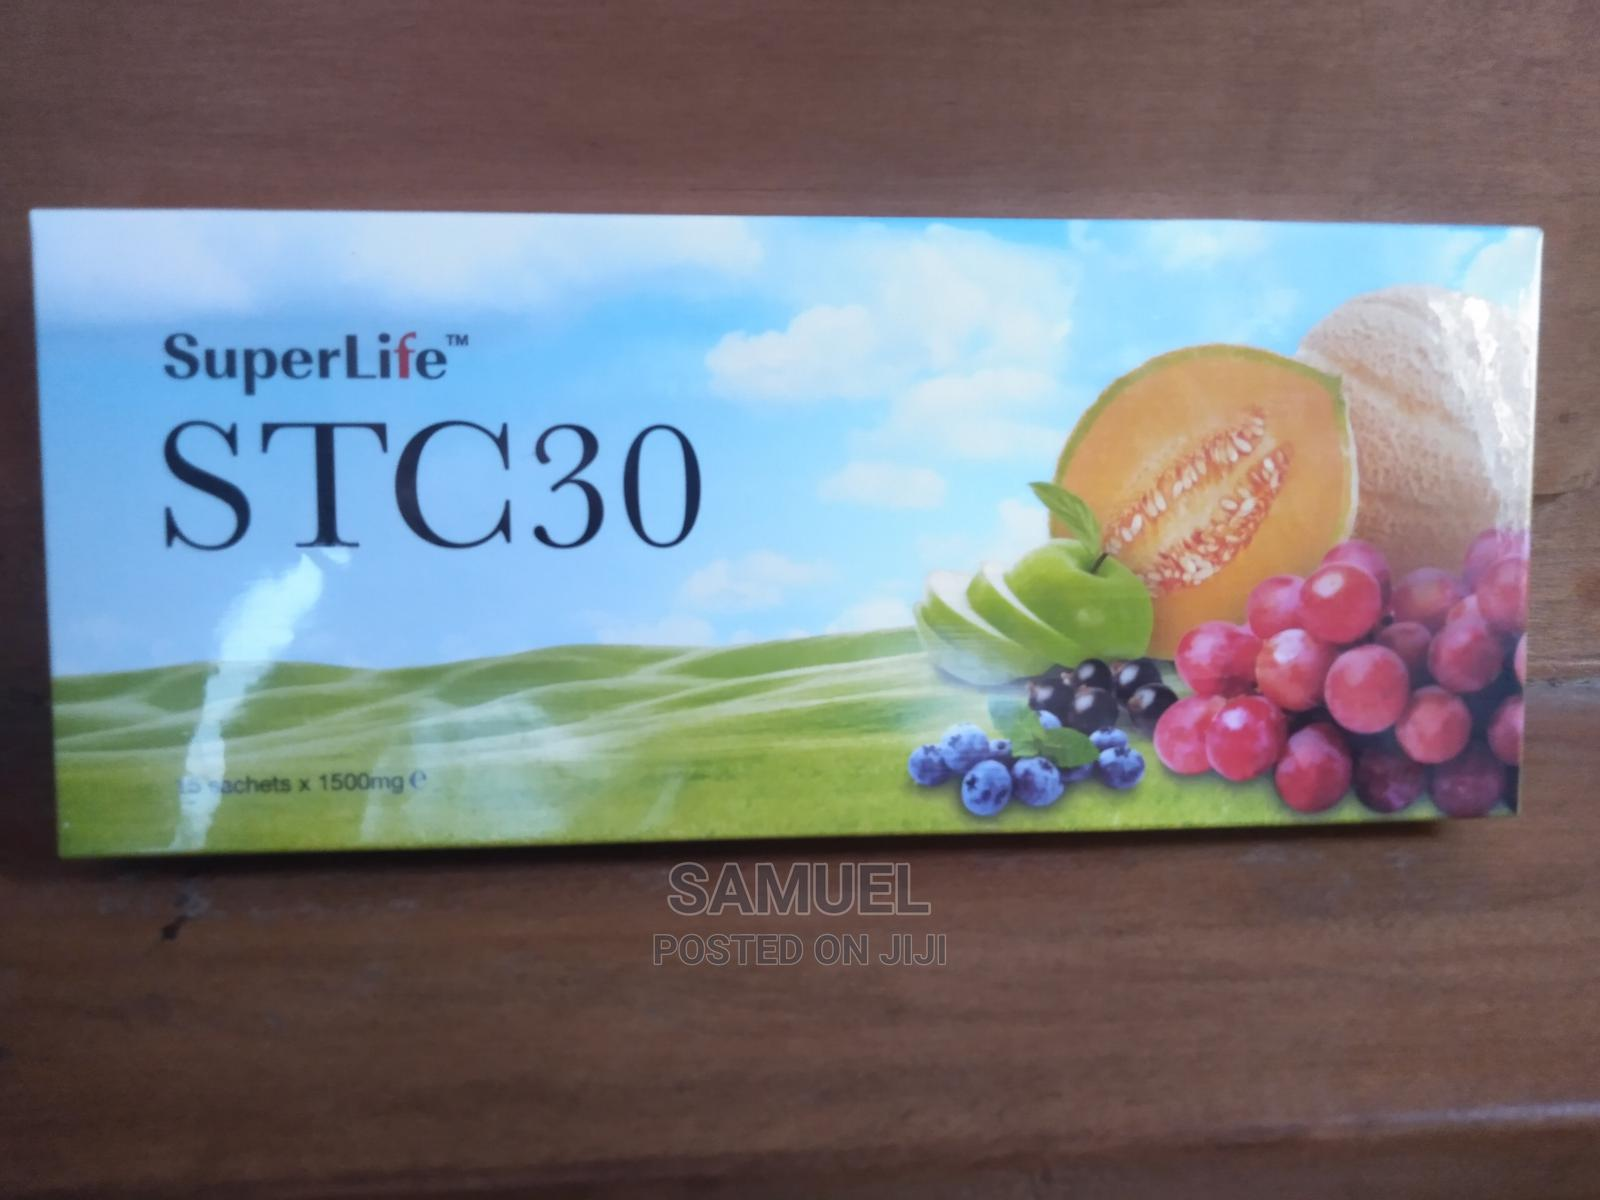 STC30 Superlife Total Care Stem Cell Therapy